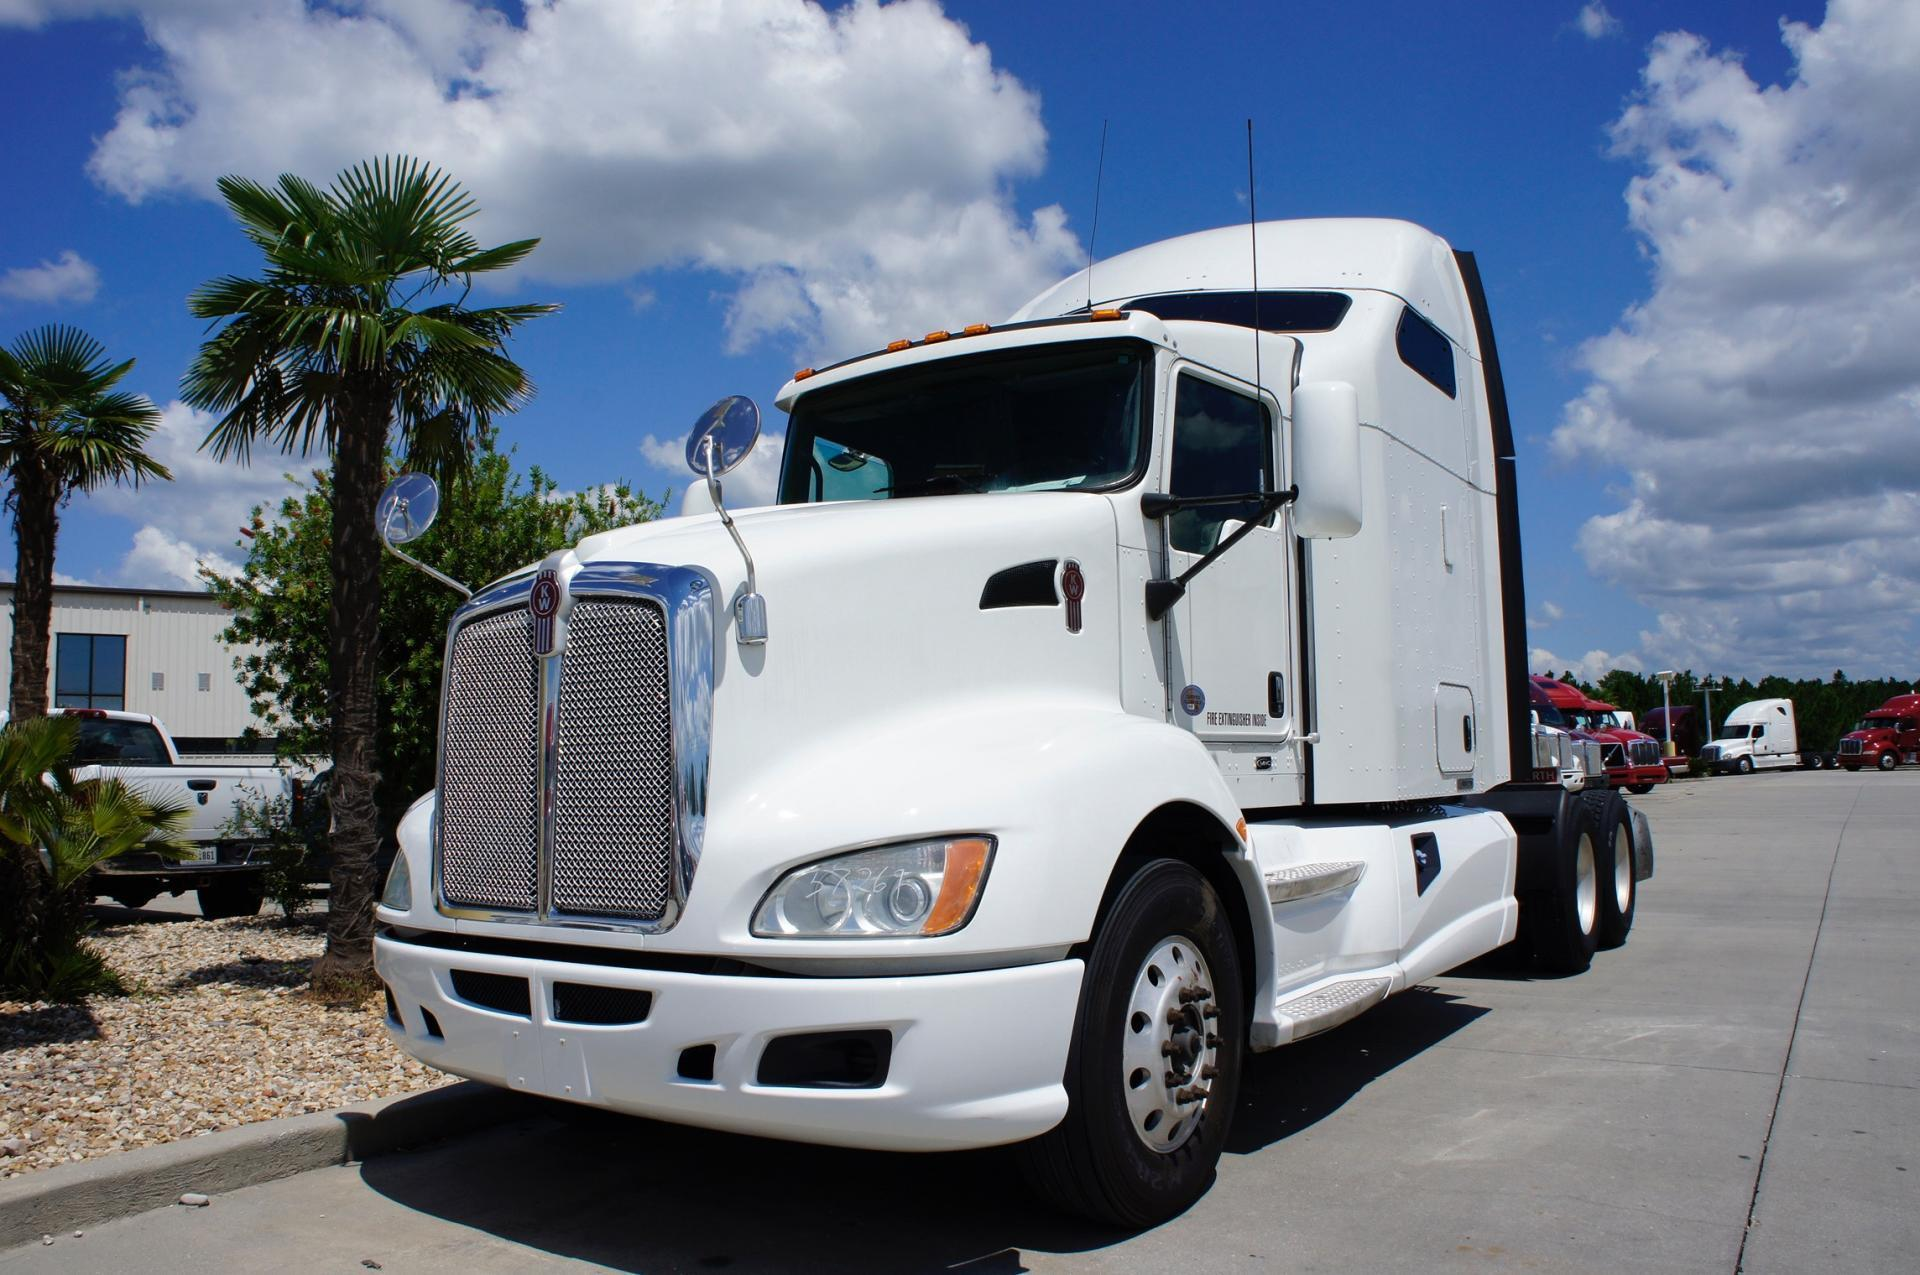 USED 2013 KENWORTH T660 SLEEPER TRUCK #98029